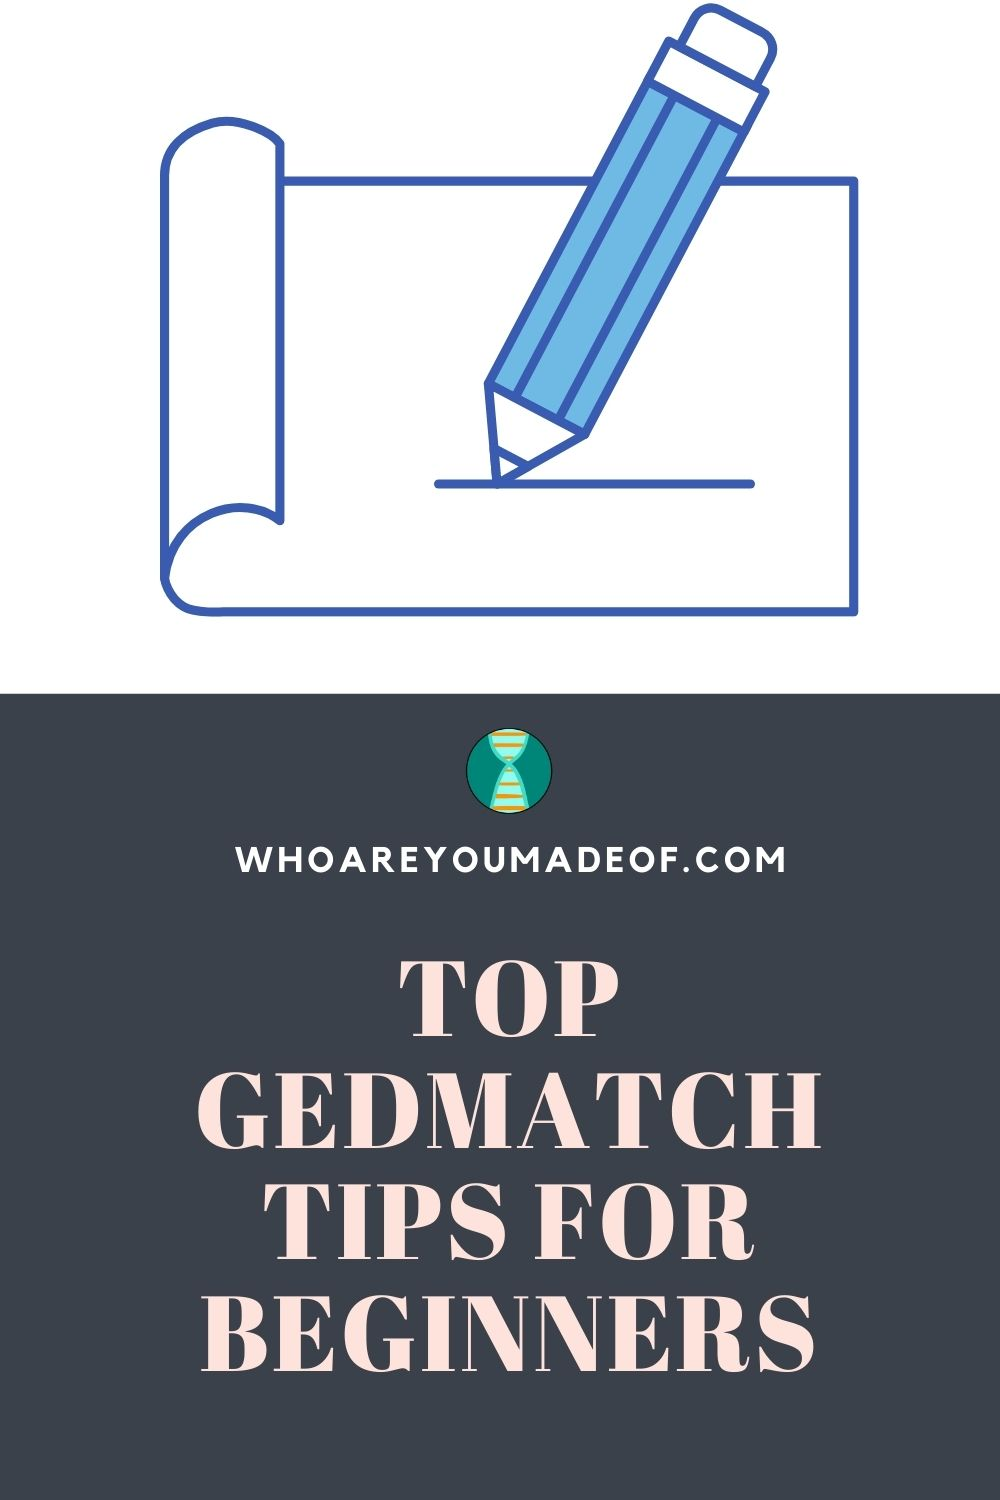 Gedmatch tutorial for beginners pinterest image with note paper and pencil